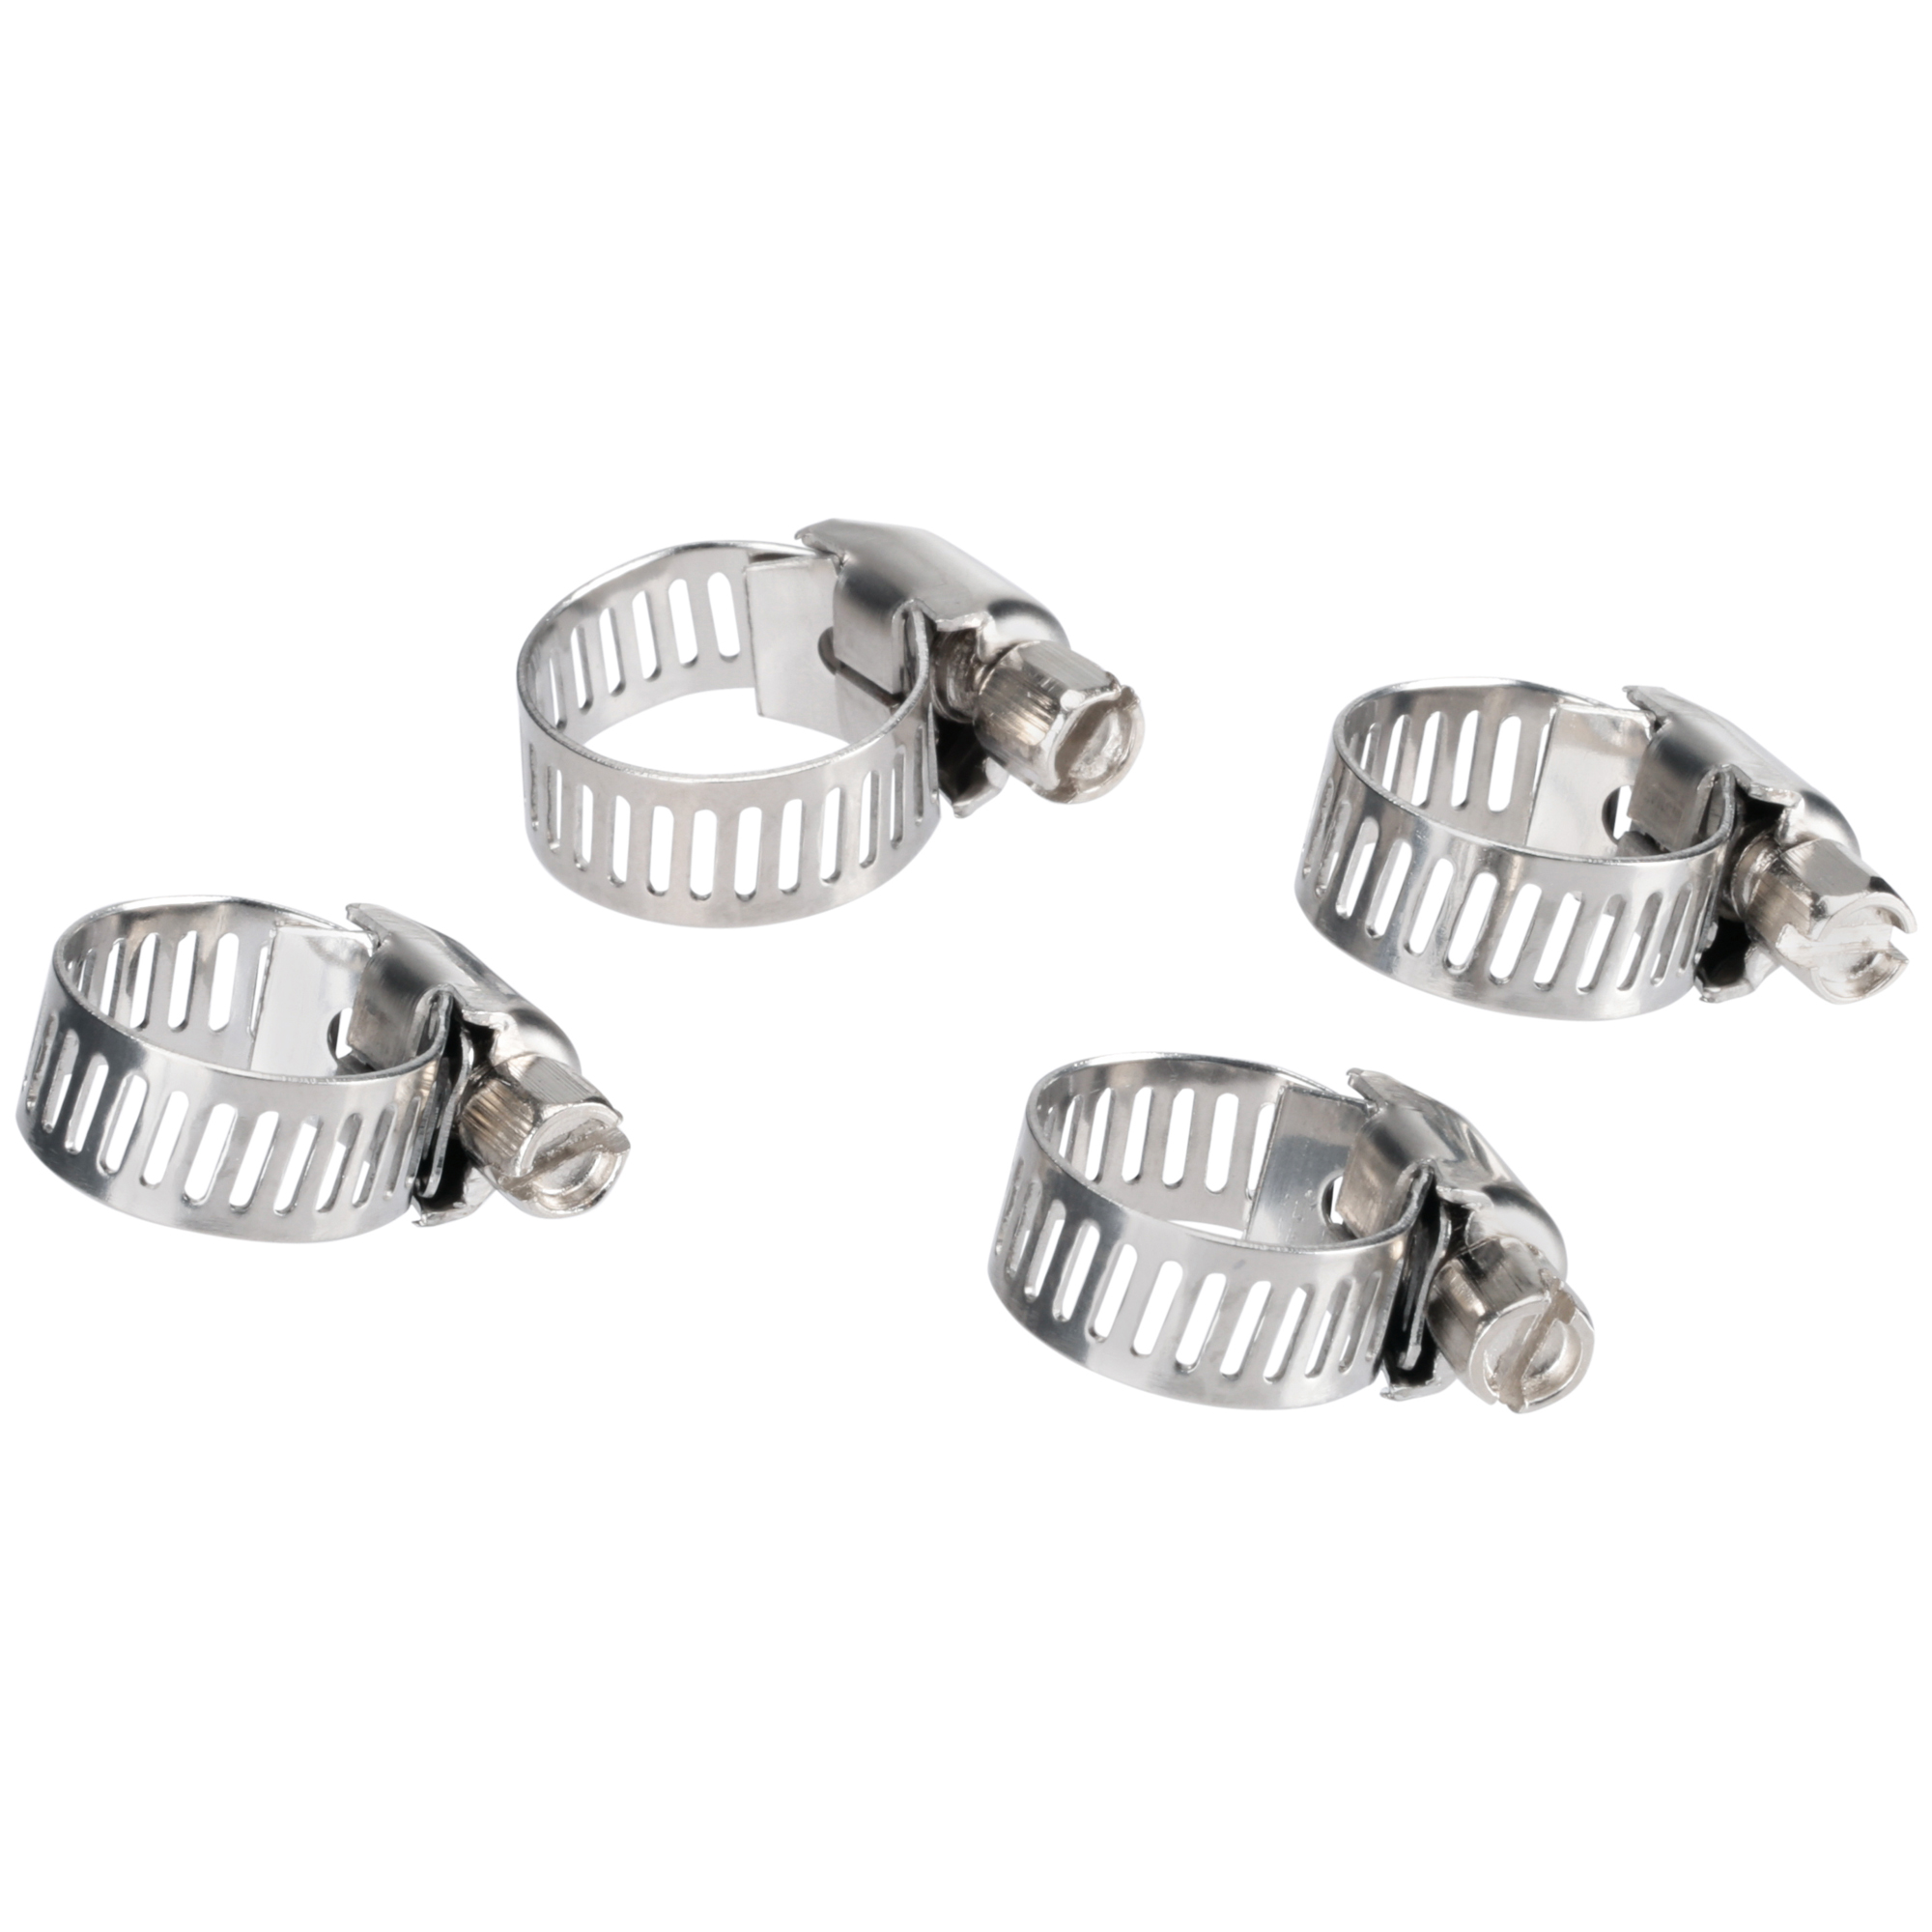 Shop Craft® Stainless Steel Bands Hose Cl&s 4 ct Pack  sc 1 st  Walmart & Shop Craft® Stainless Steel Bands Hose Clamps 4 ct Pack - Walmart.com